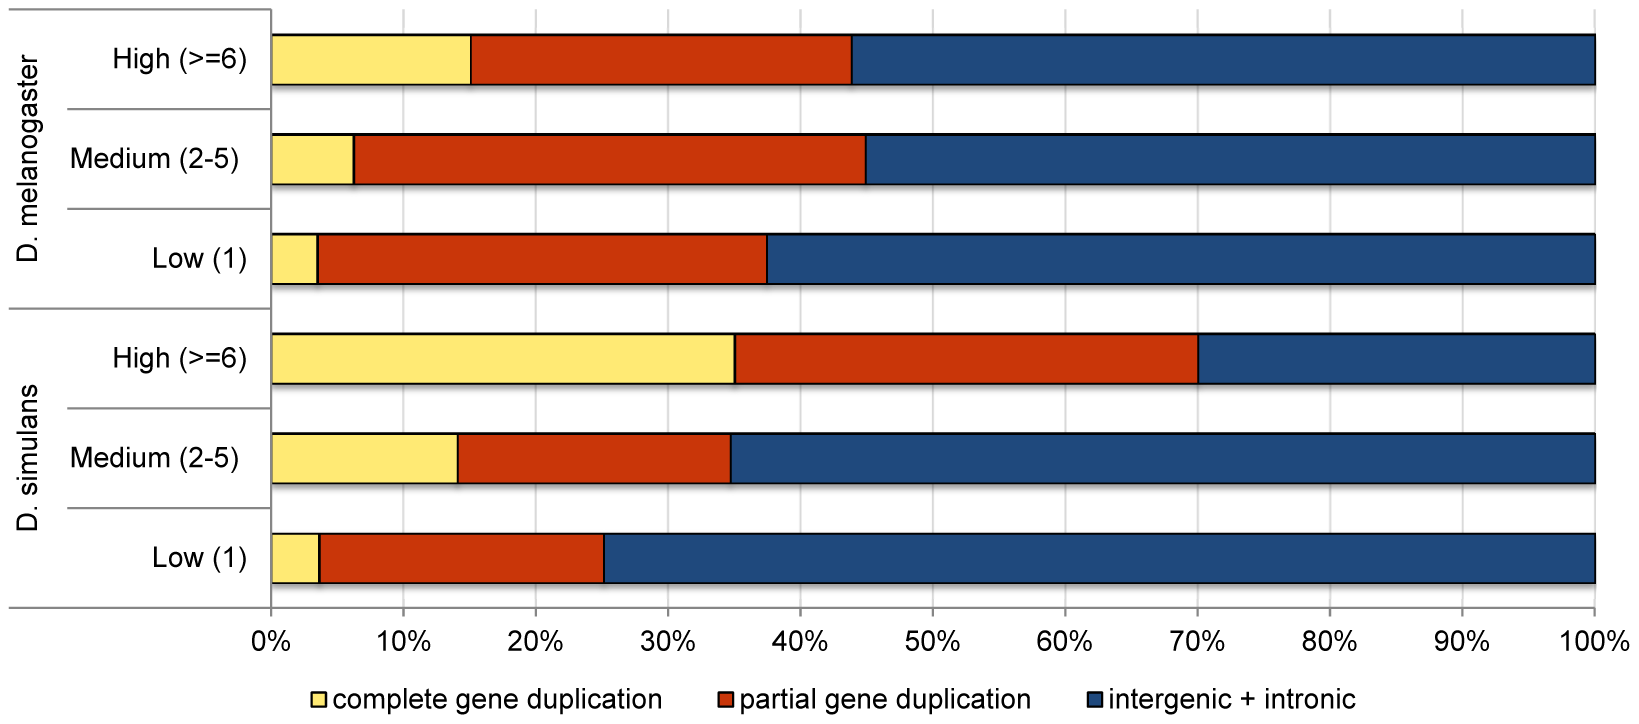 Comparison of the proportion of duplications in low-, medium-, and high-frequency overlapping different genomic contexts in <i>D. simulans</i> and <i>D. melanogaster</i>.